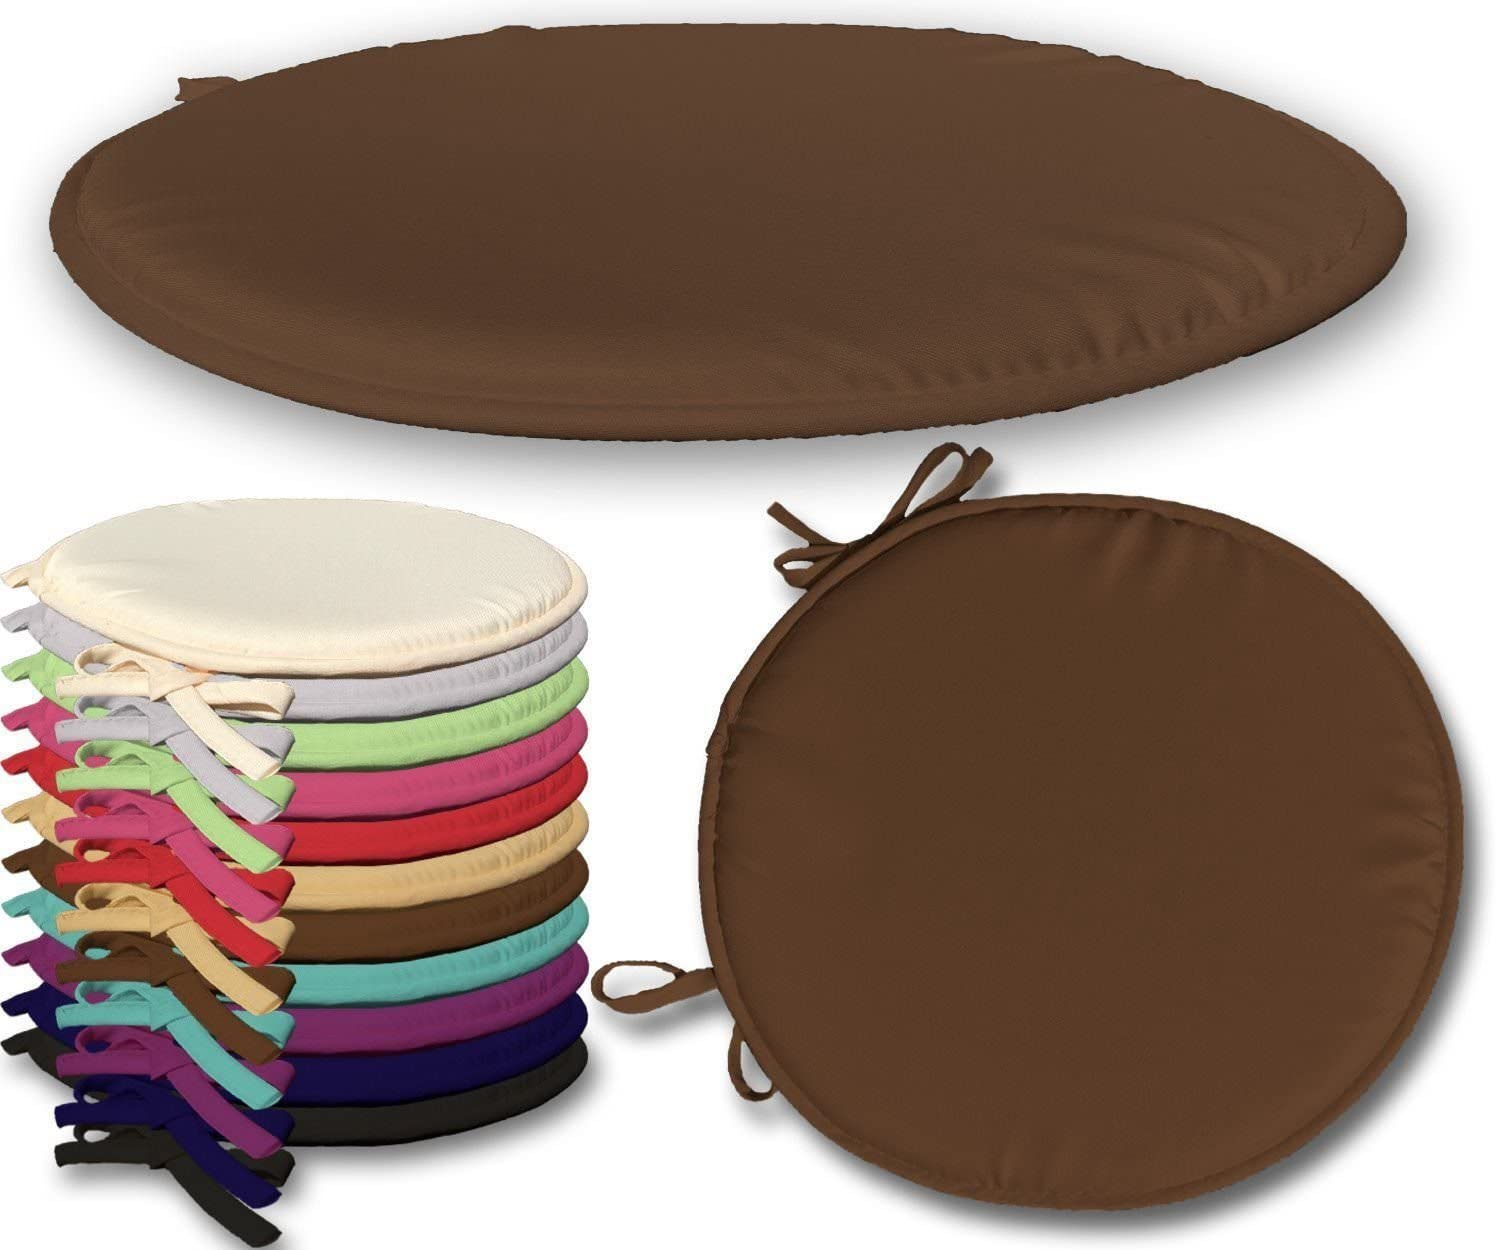 Maria Luxury Bedding /& Linen Chocolate Round Seat Pads Garden Patio Chair Cushion Pads with Tie-On Perfect Pads for Kitchen Dining Patios Chairs in Chocolate Pack of 1 38cm x 38cm x 2cm